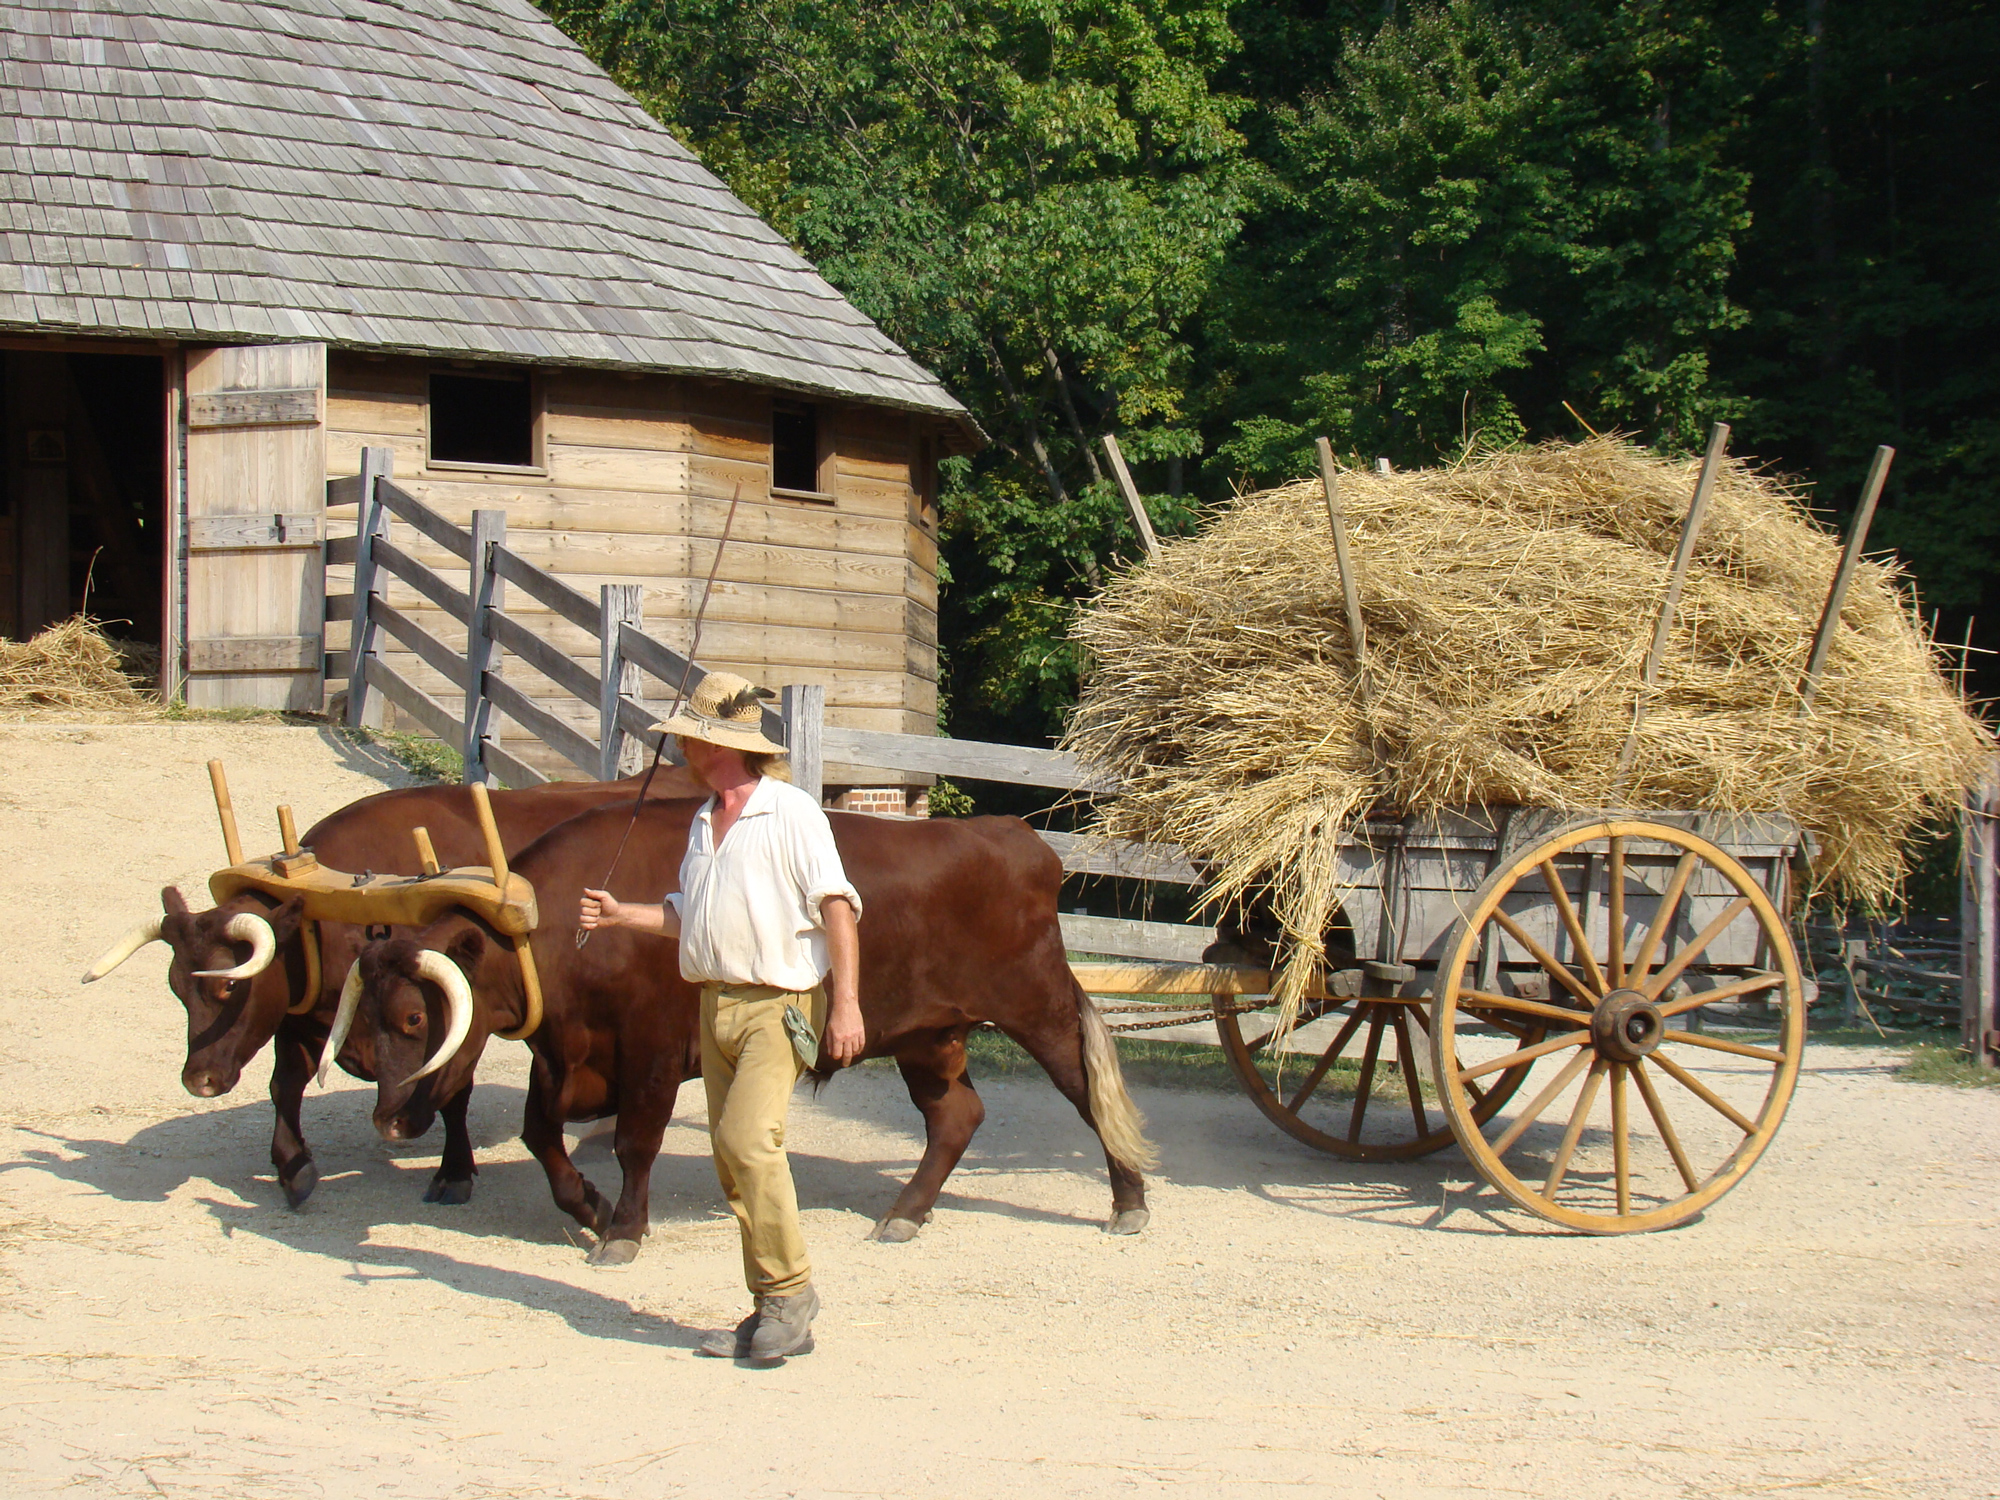 Heritage breed animals can be found working seasonally on the Pioneer Farm